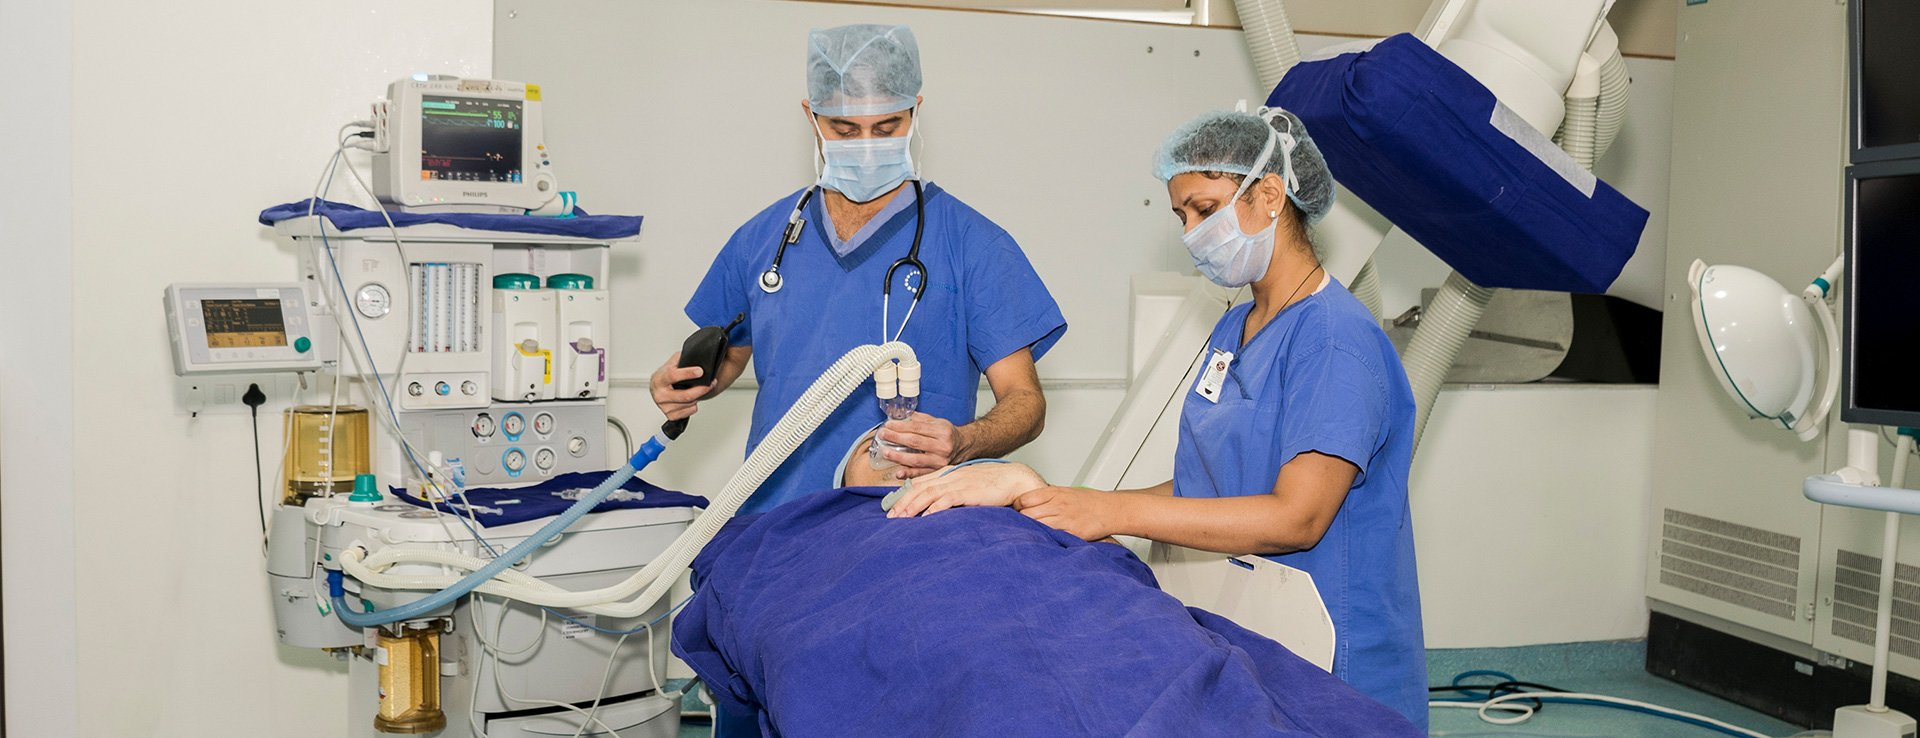 anaesthesiology-services-in-mumbai